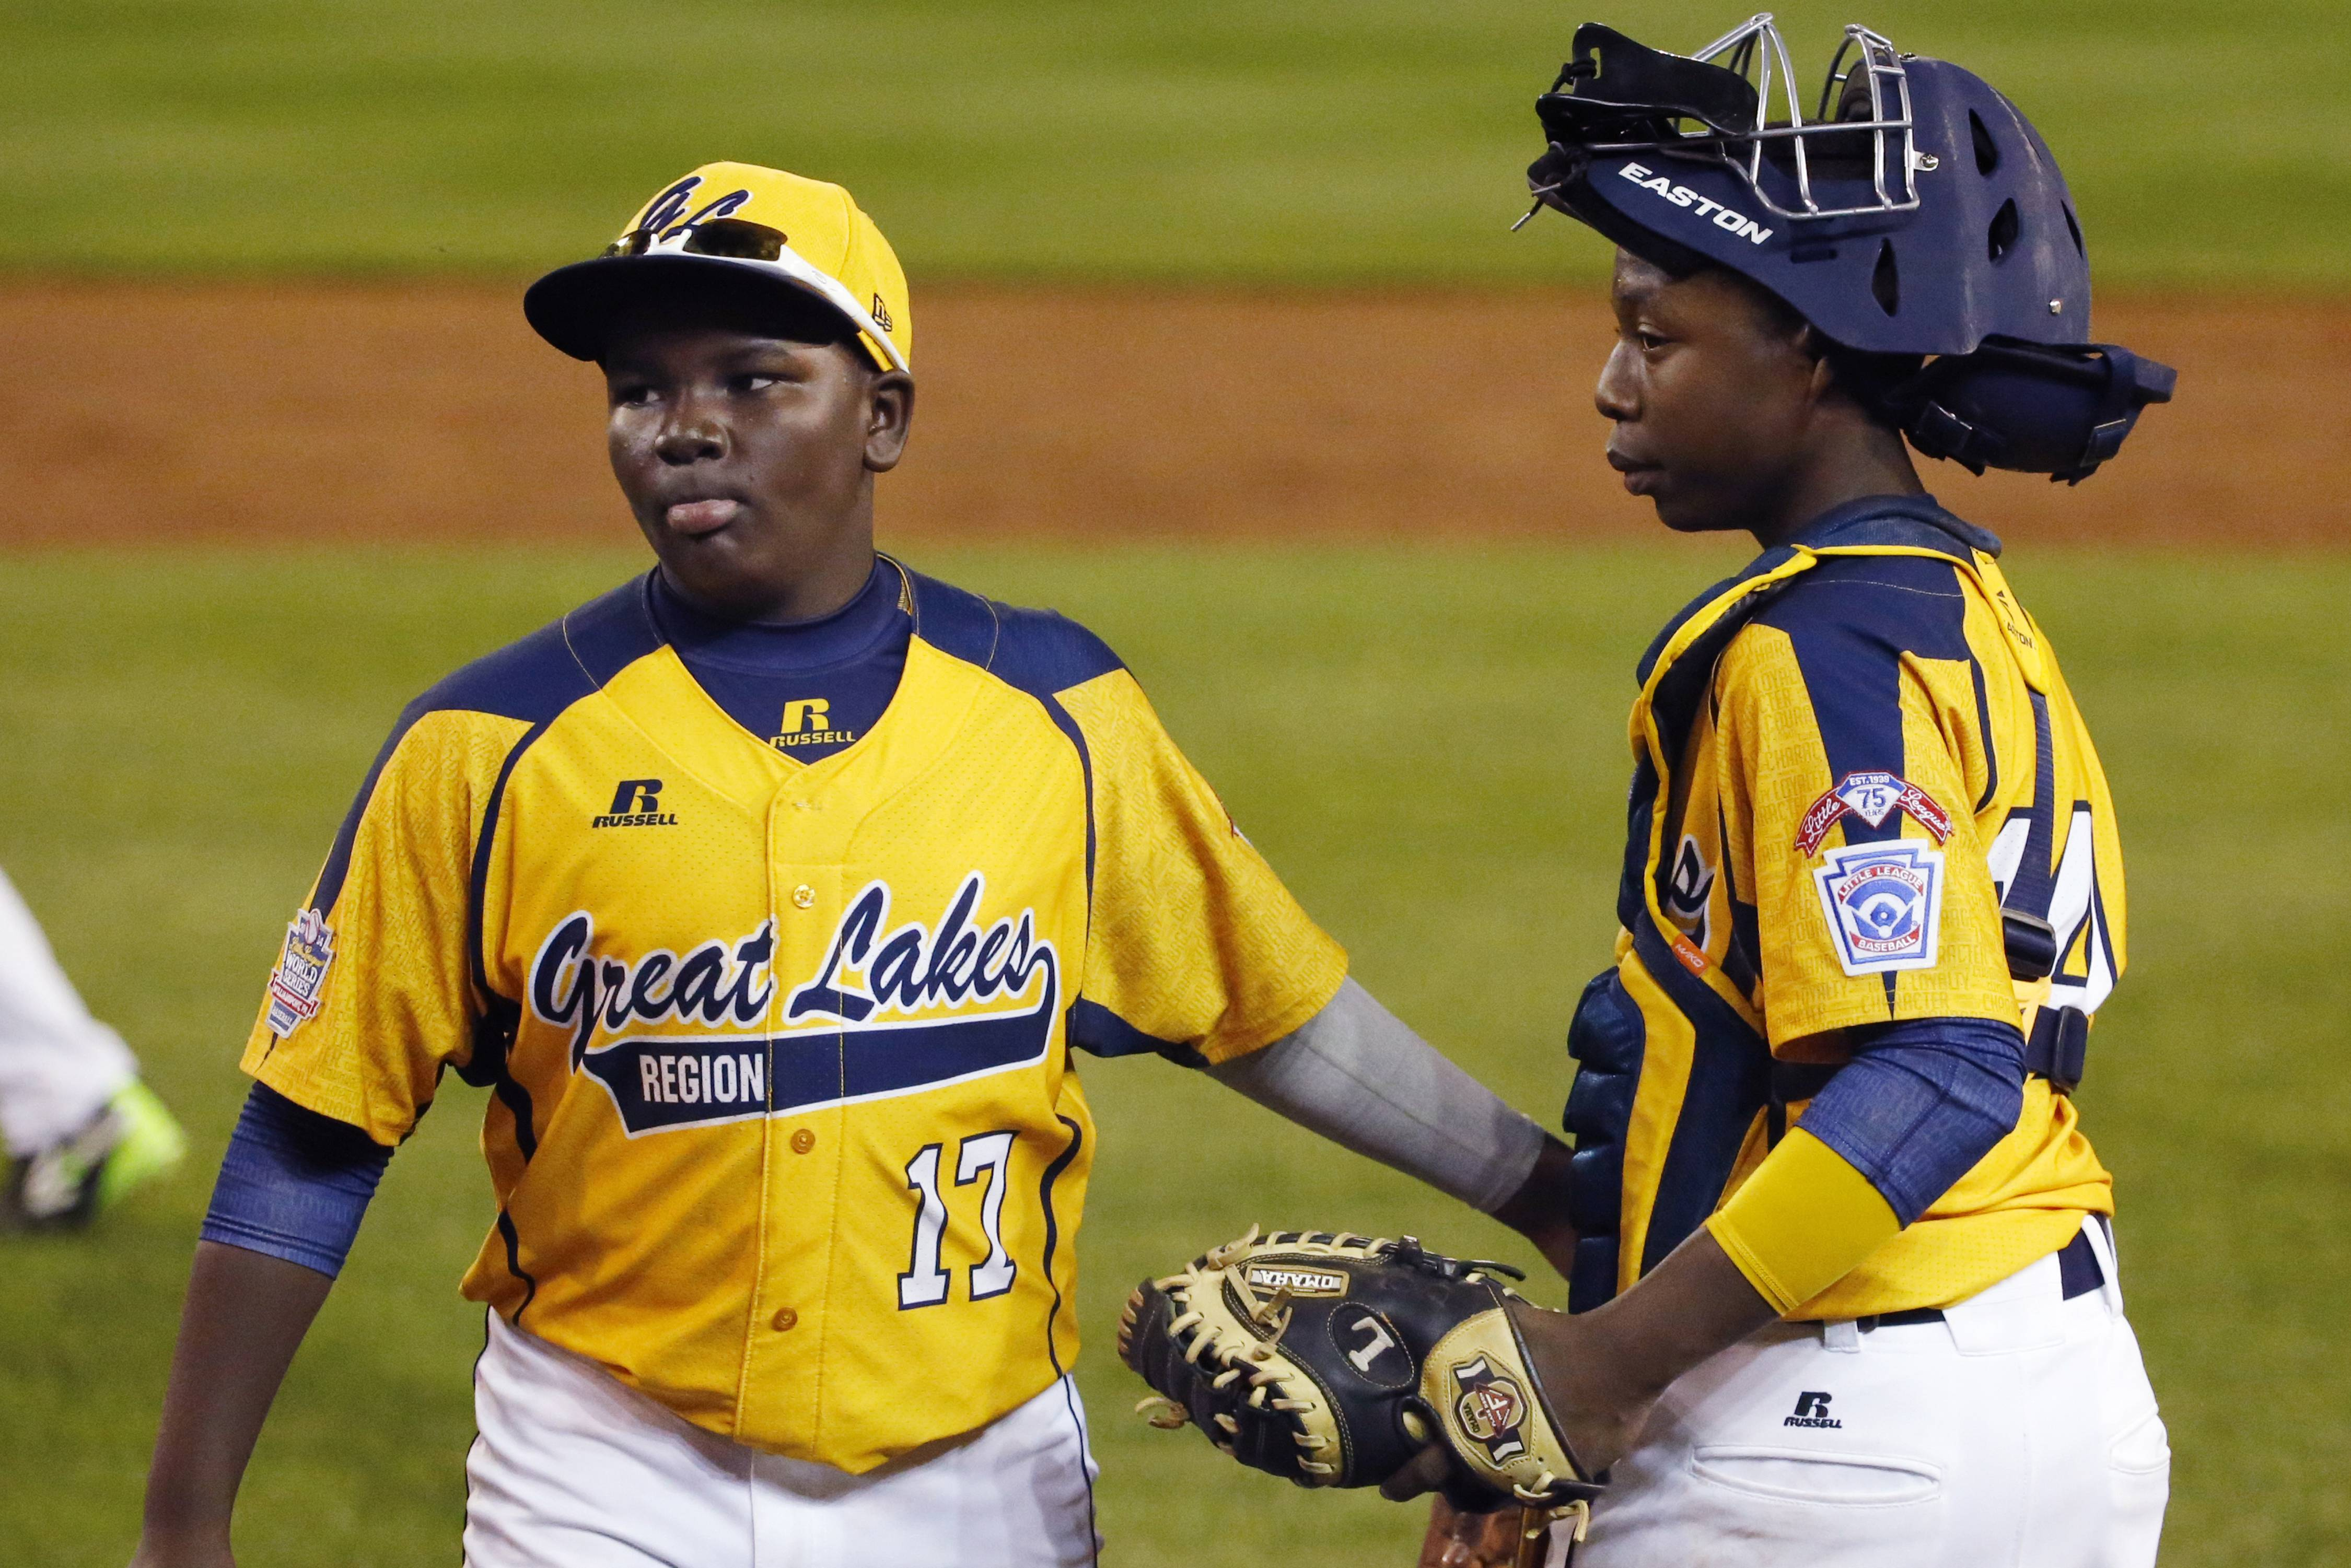 Chicago's Joshua Houston (17) and catcher Brandon Green gather their Jackie Robinson West team after winning an elimination game Tuesday at the Little League World Series in South Williamsport, Pa. Chicago beat Texas 6-1 and will play again on Thursday.